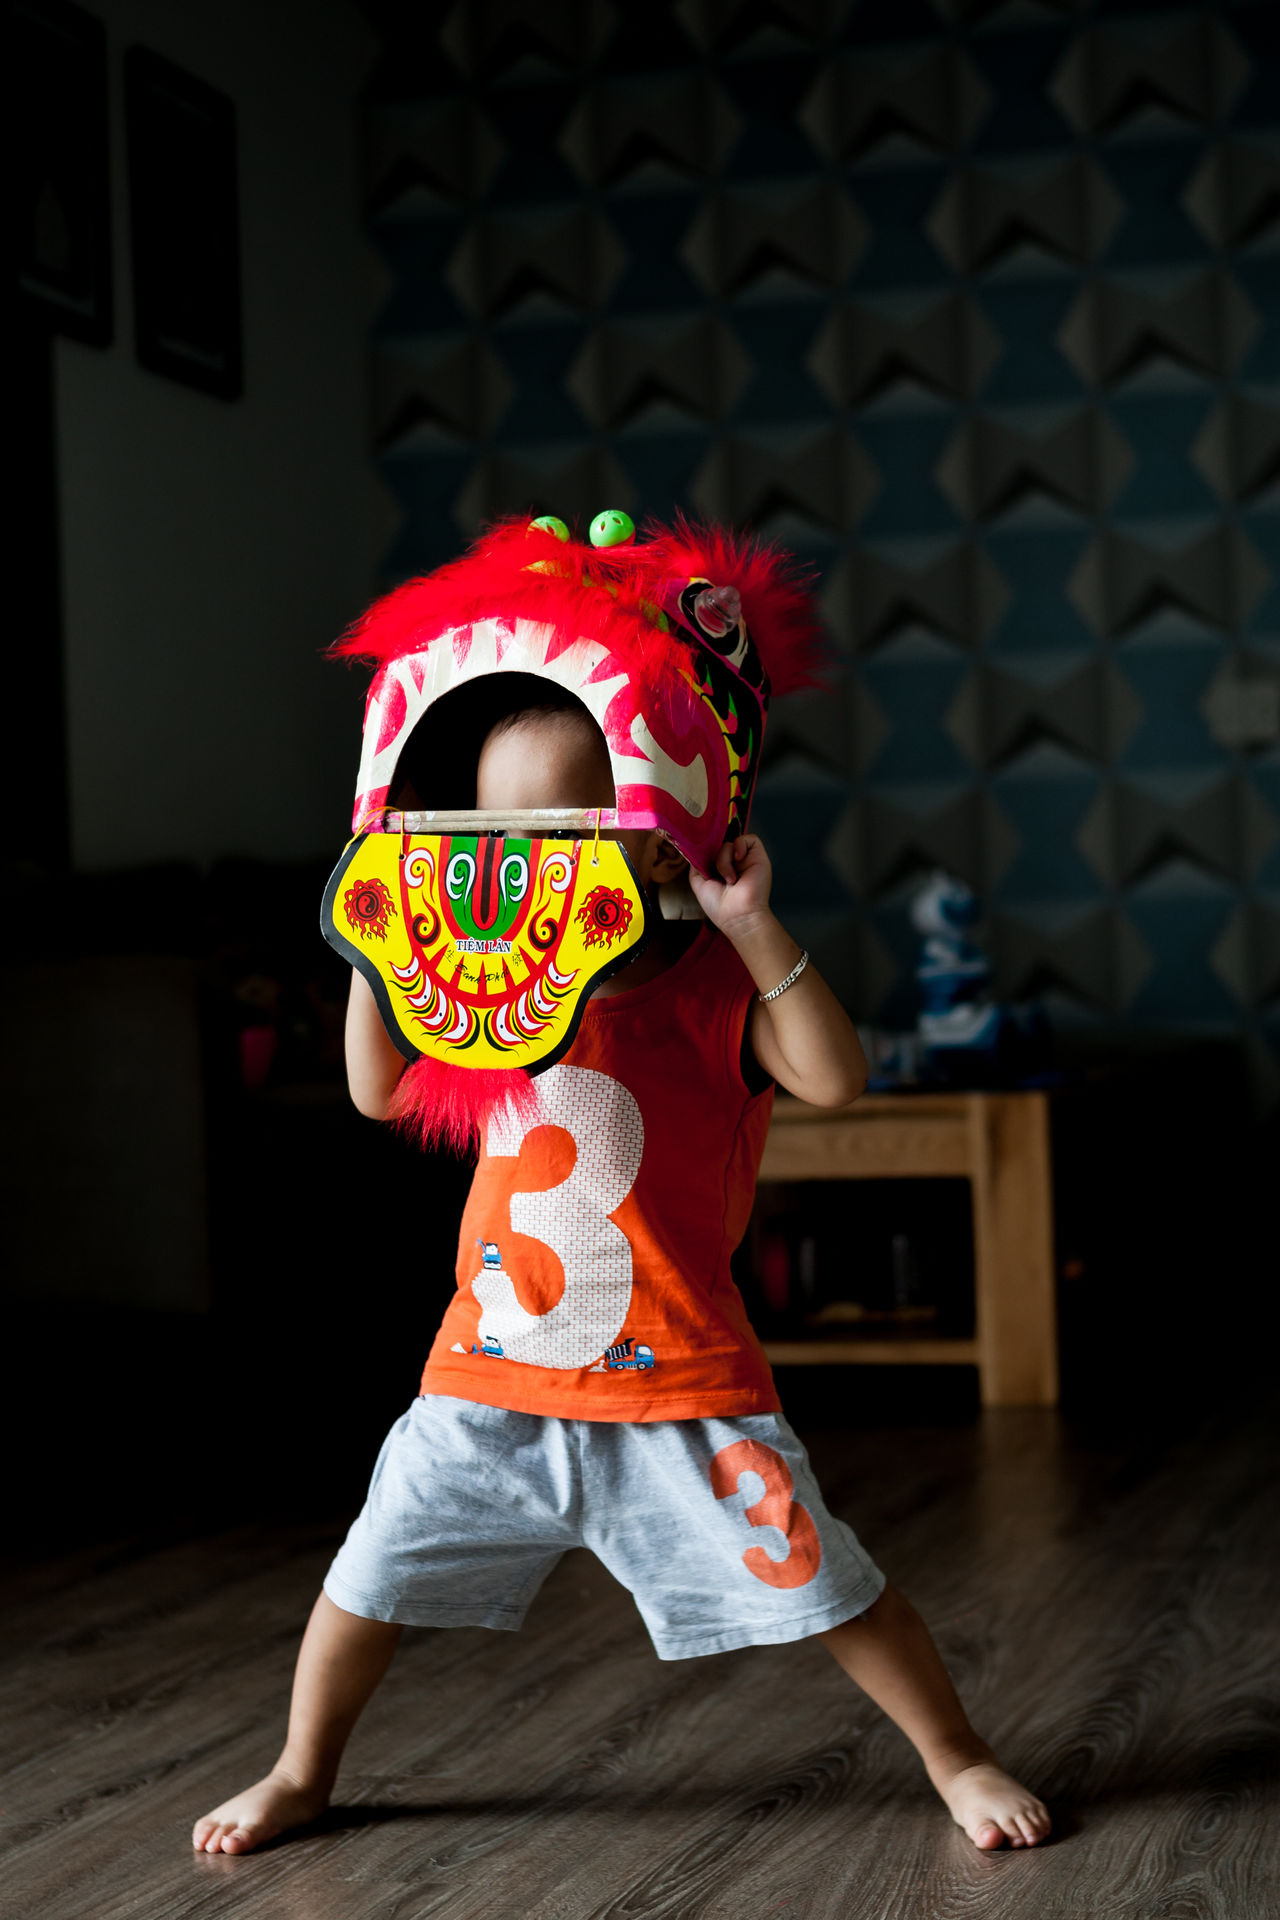 A kid is wearing a lion mask, dancing around his home, like the lion dance that he saw on Pagoda. Child Childhood Costume Dancing Full Length Fun Habit Indoors  Kids Playing Lion Dance One Person Performance Real People The Portraitist - 2017 EyeEm Awards EyeEmNewHere